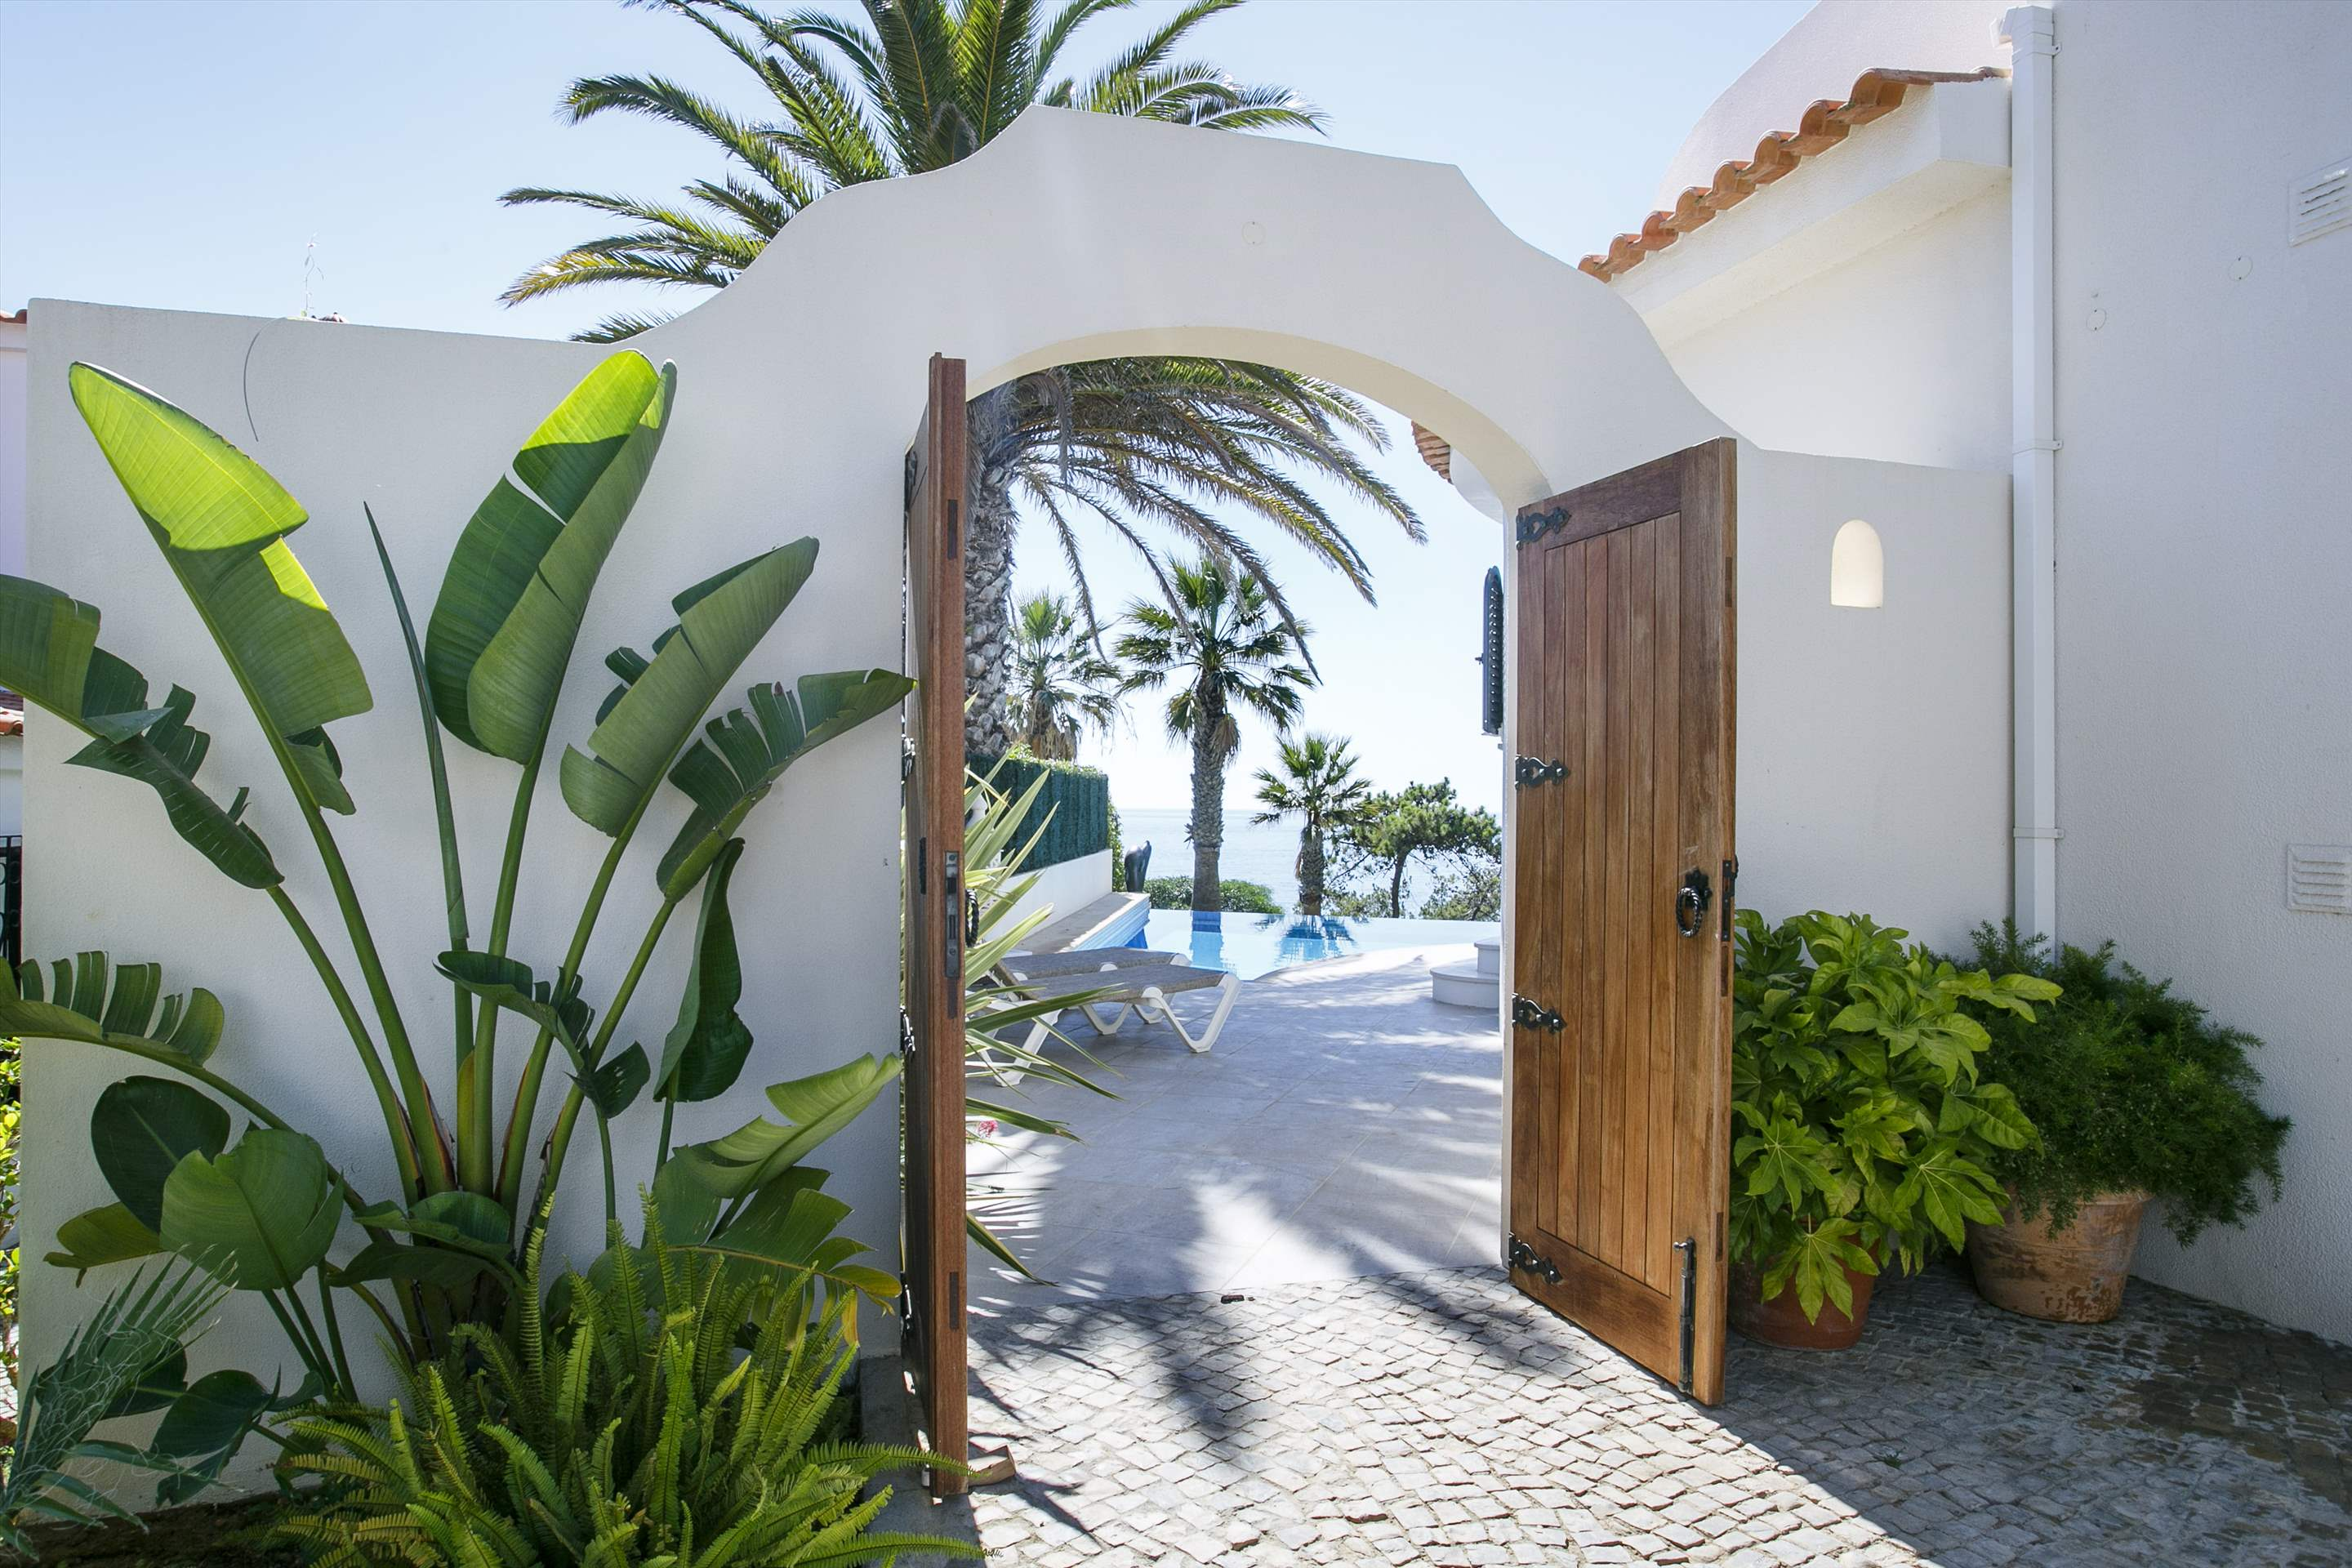 Villa Ocean Beach, 4 bedroom villa in Vale do Lobo, Algarve Photo #12